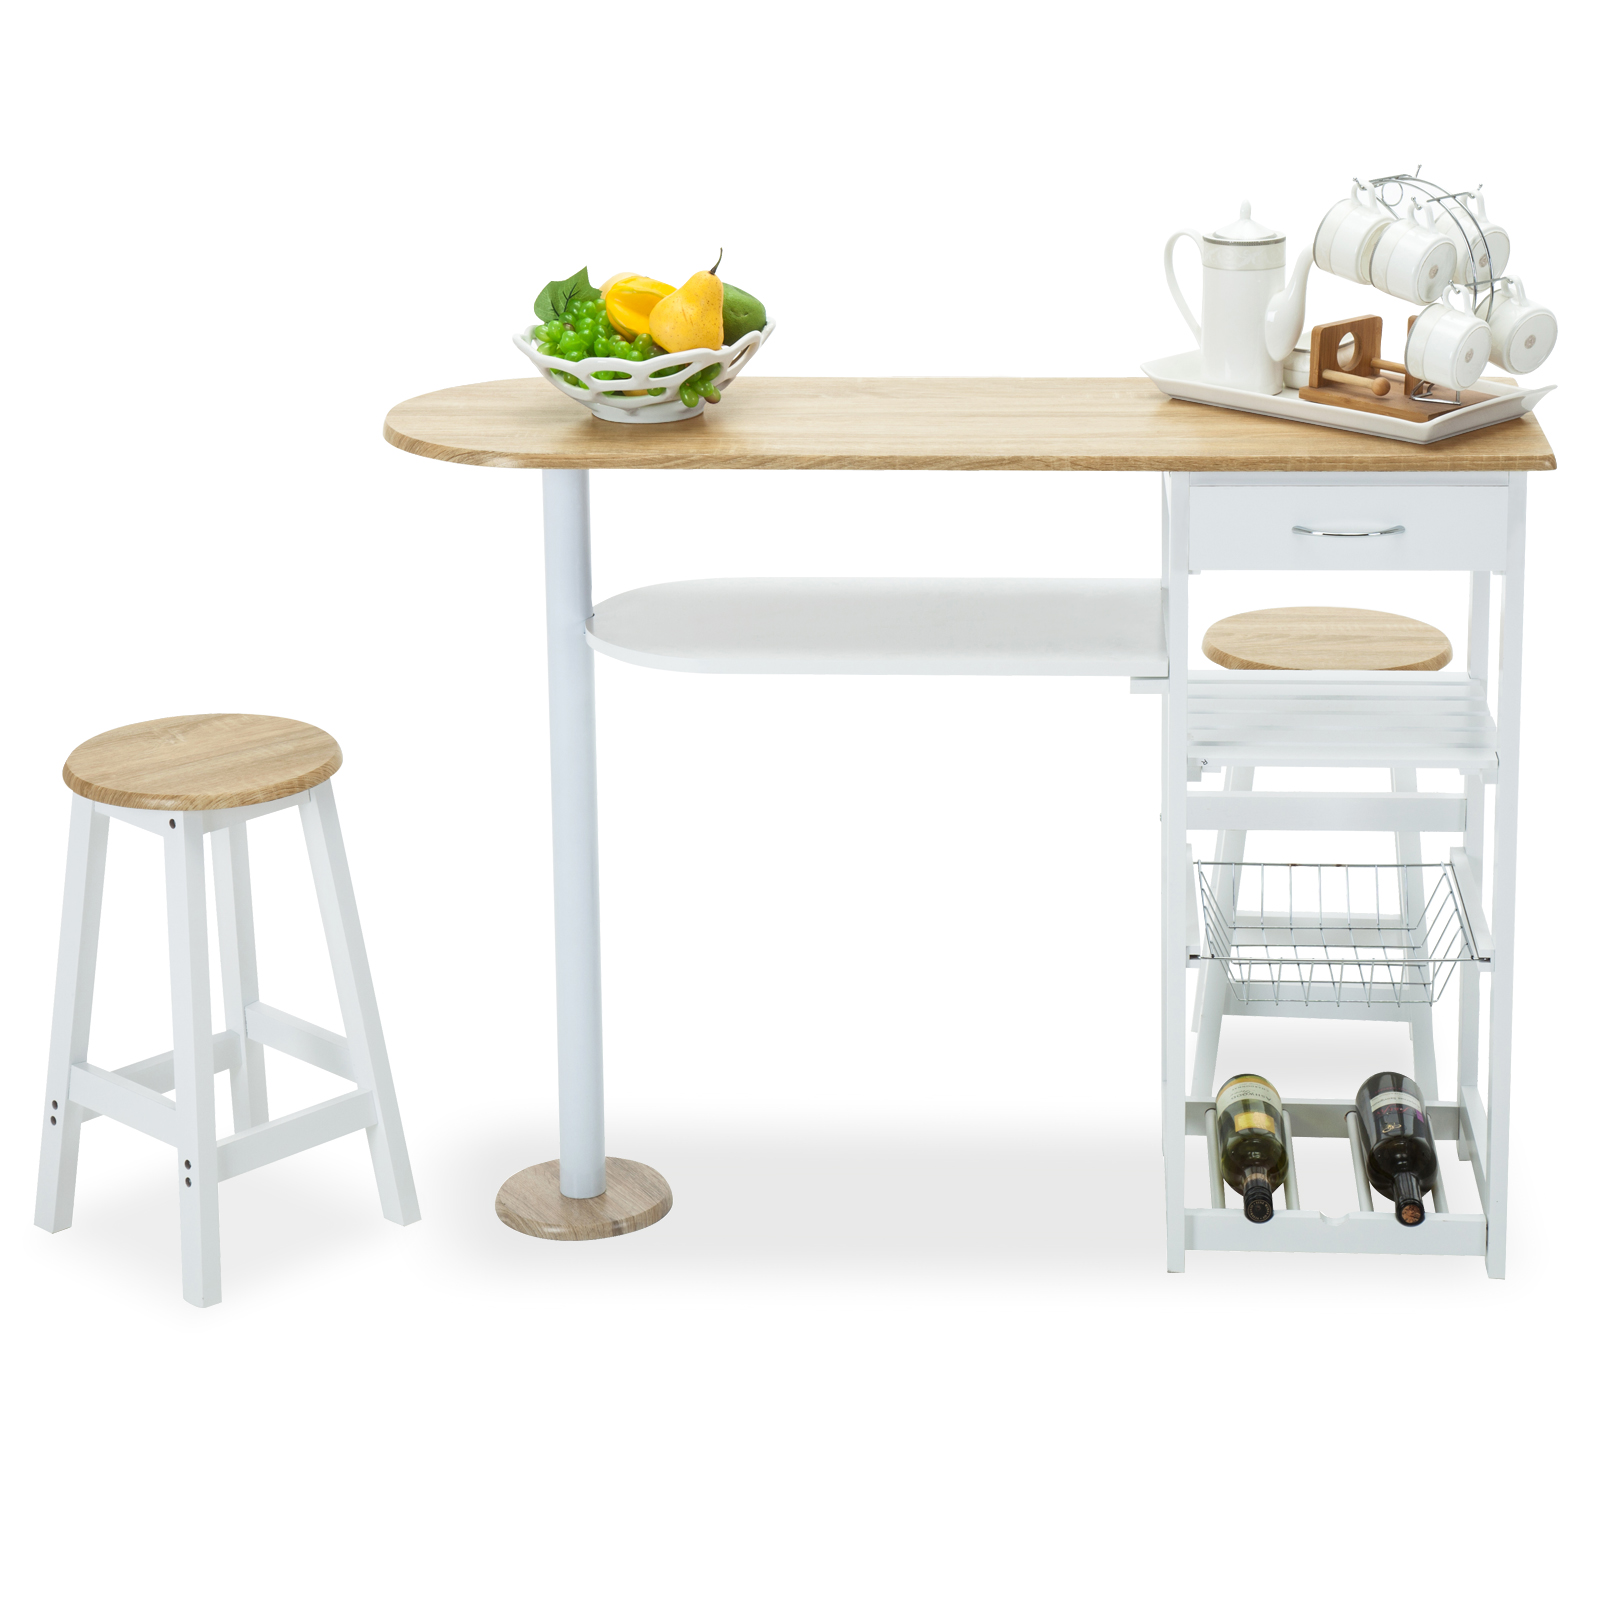 Kitchen pub tables with storage bing images for Small kitchen table with storage